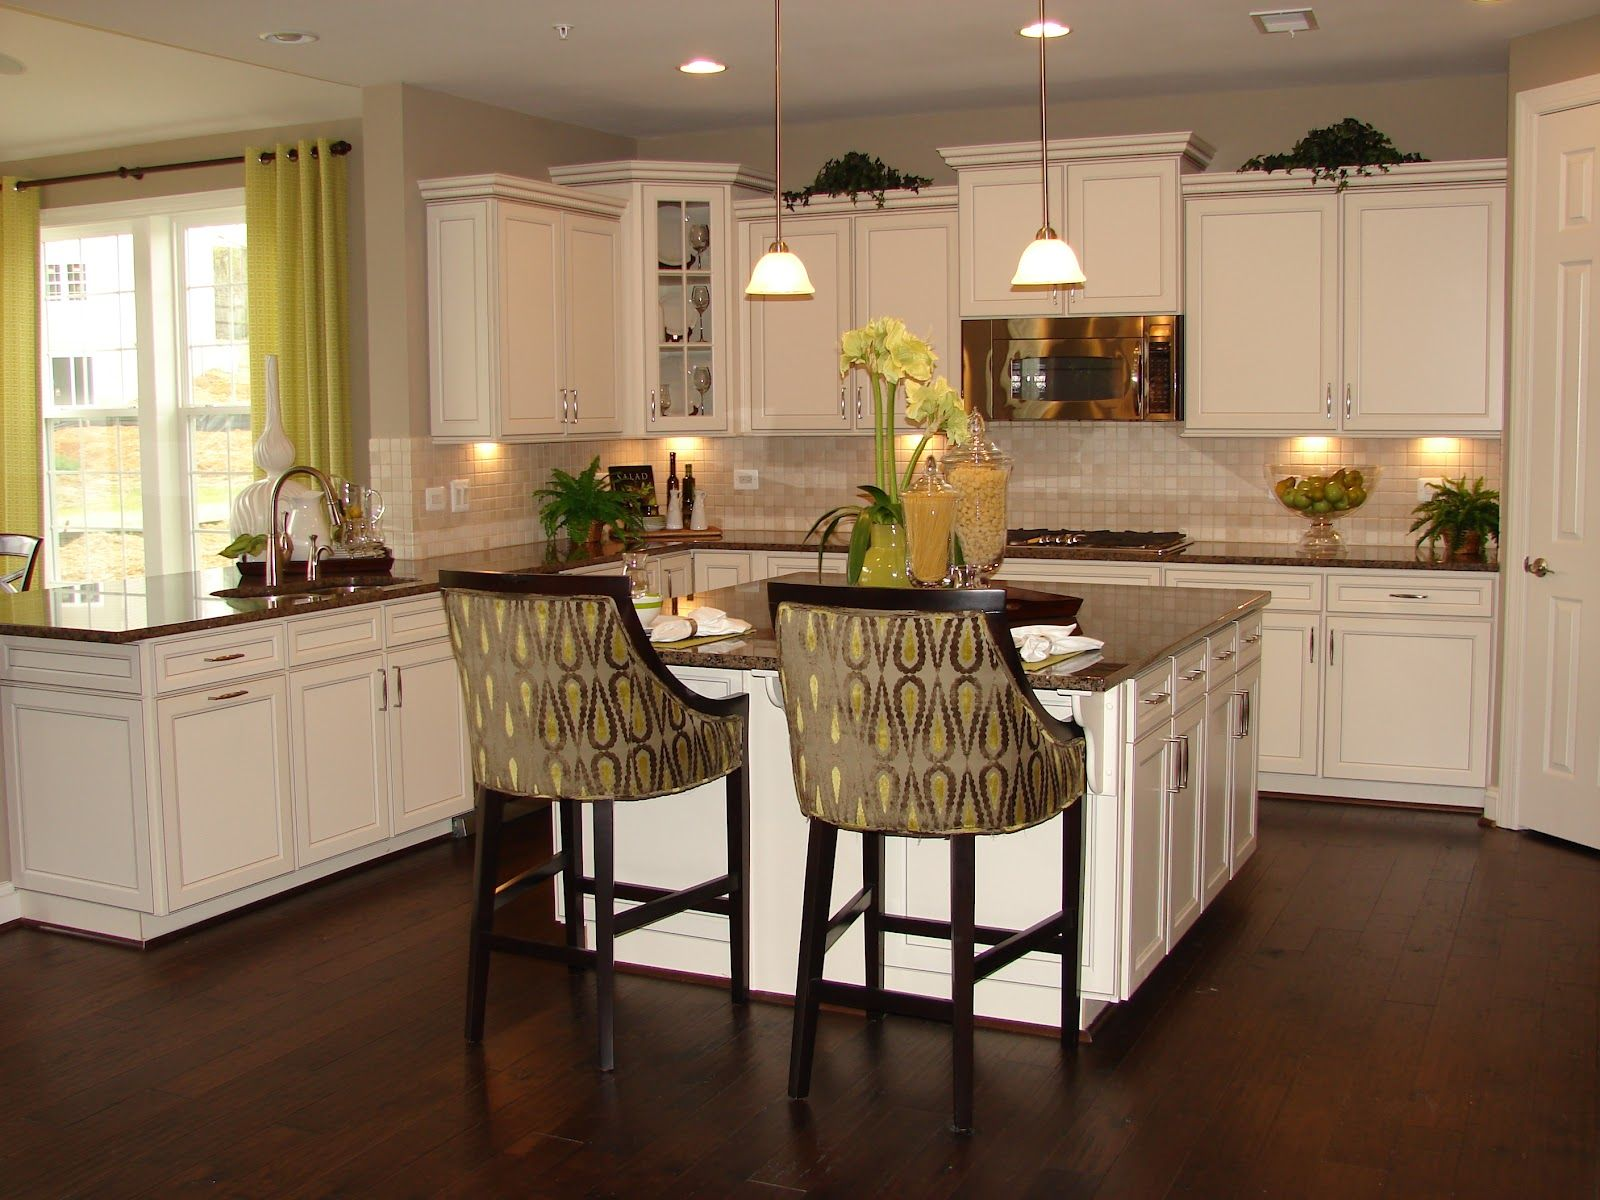 Model Home White Kitchen kitchen cabinets richmond - clubdeases